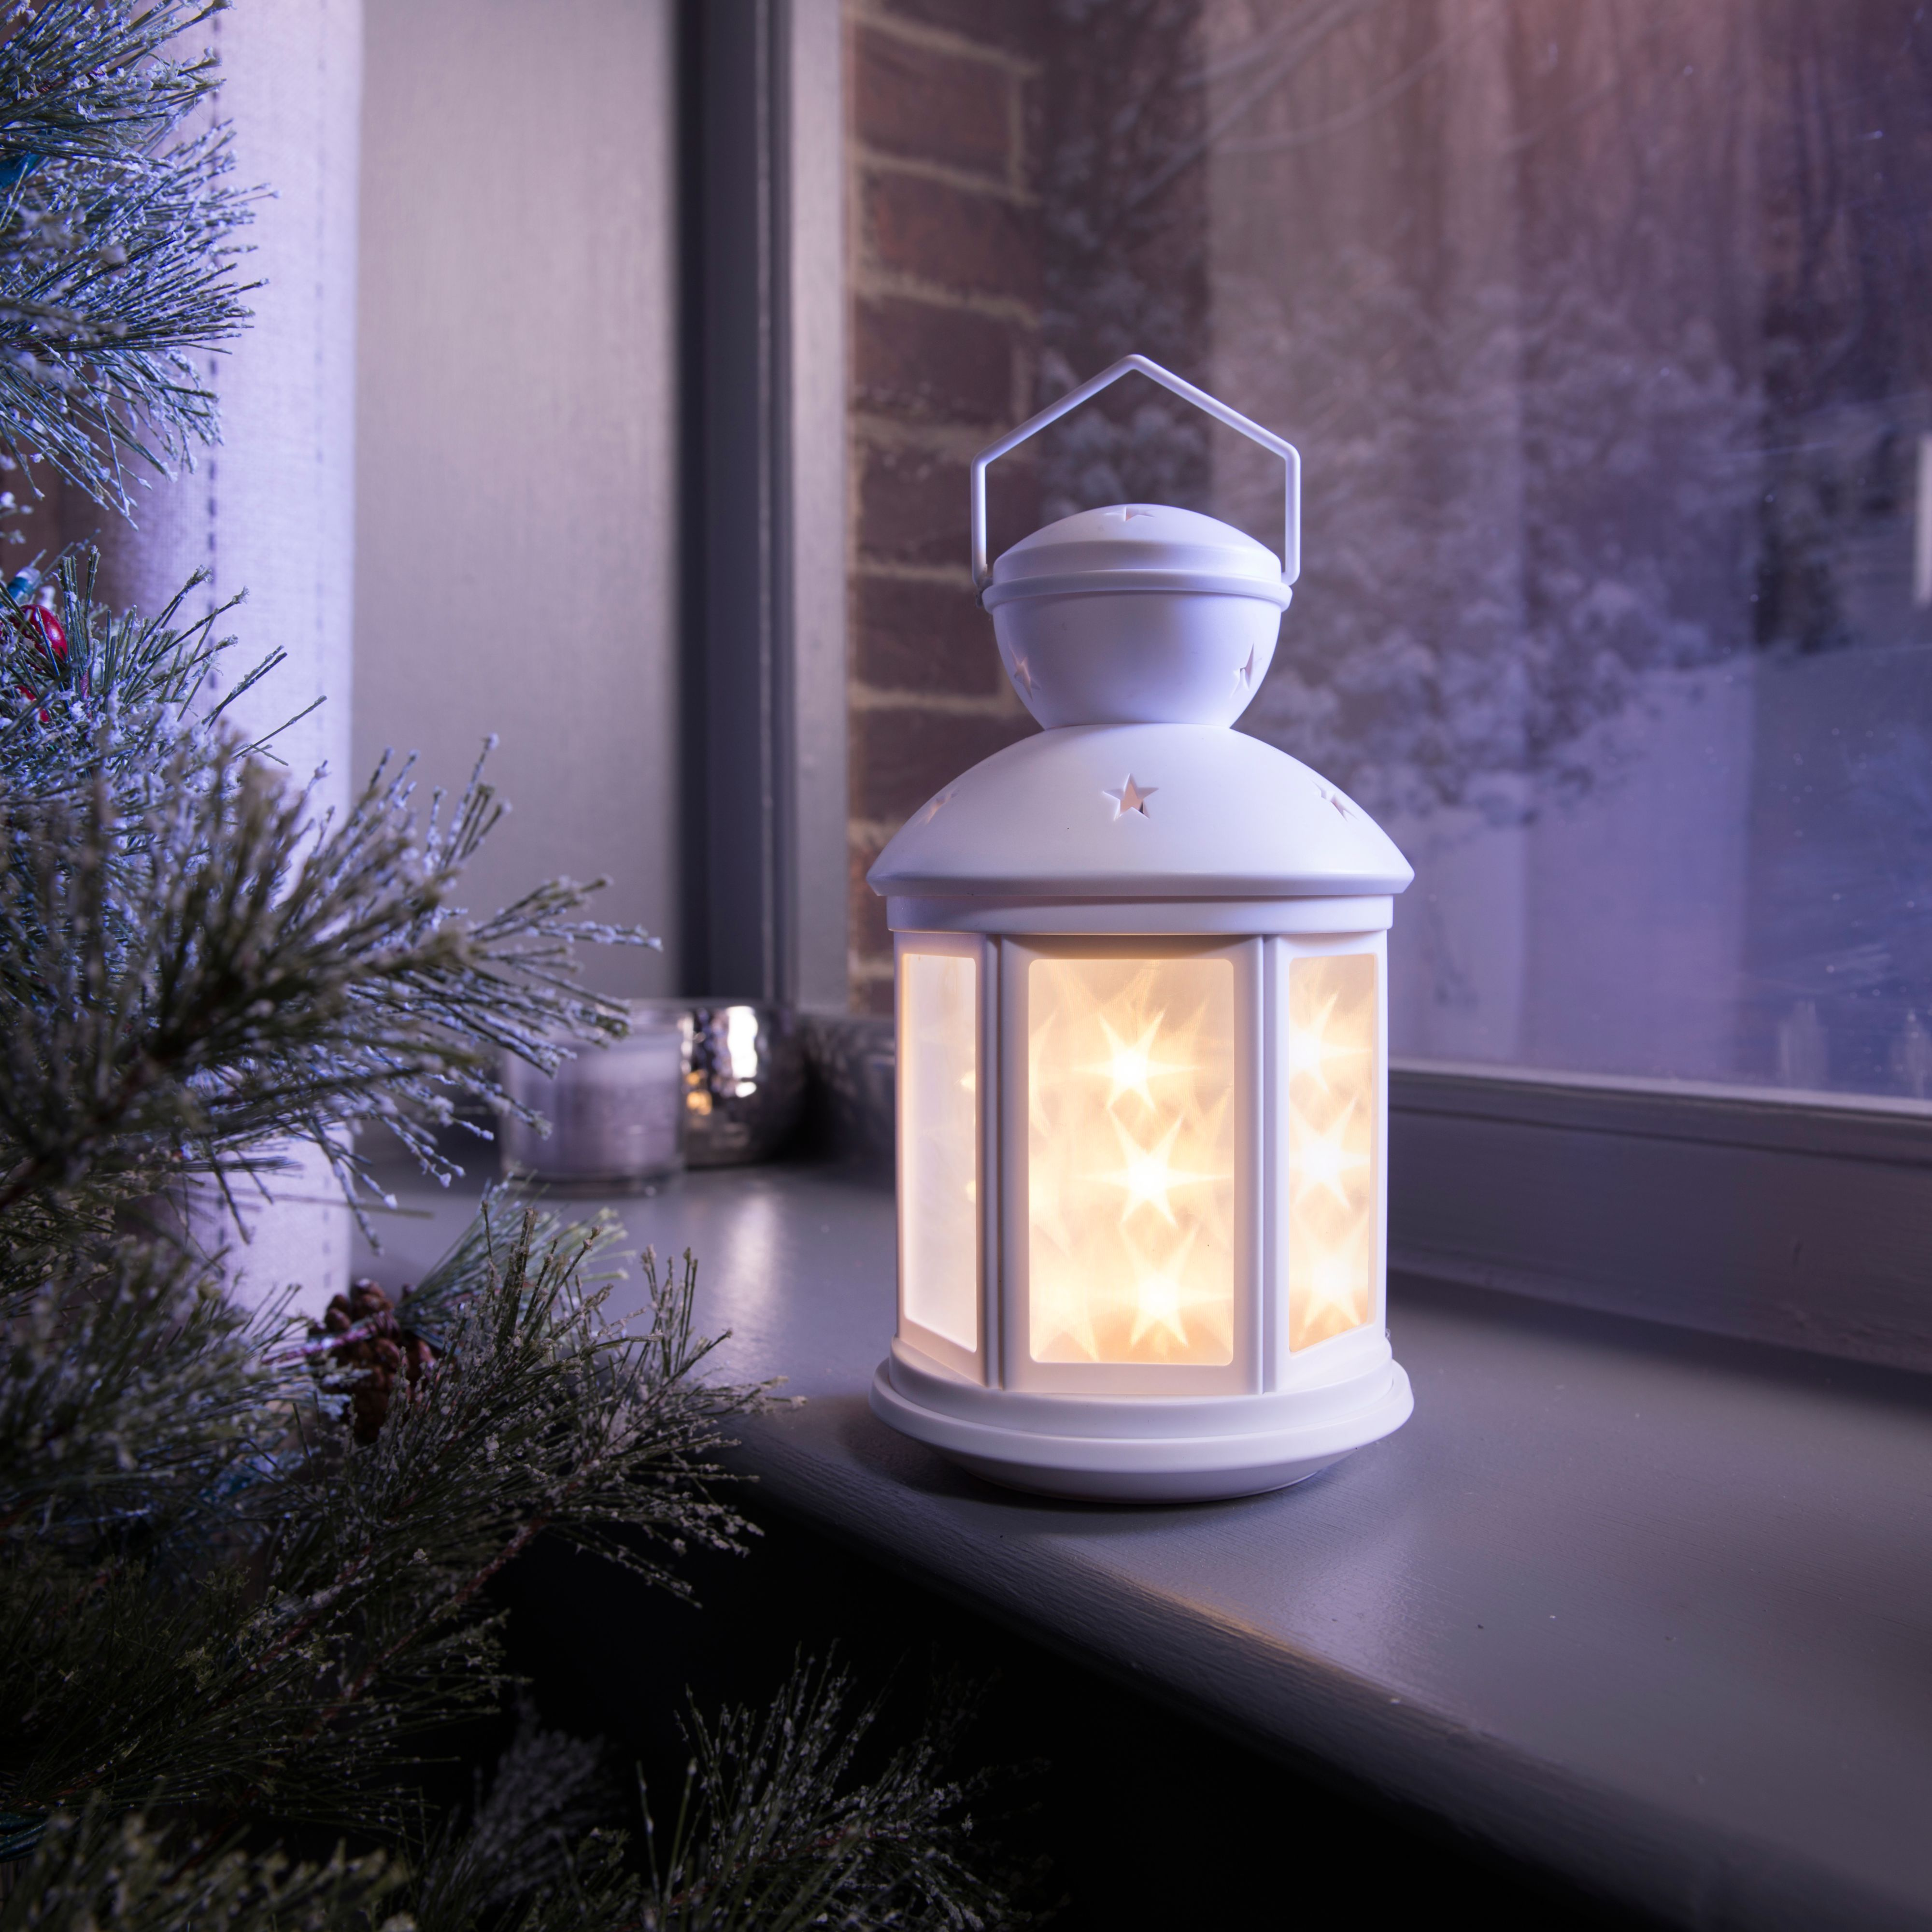 One of the most important elements of Hygge is soft, intimate lighting. Relax and absorb the twinkling soft glow of a lantern after an evening of entertaining friends.